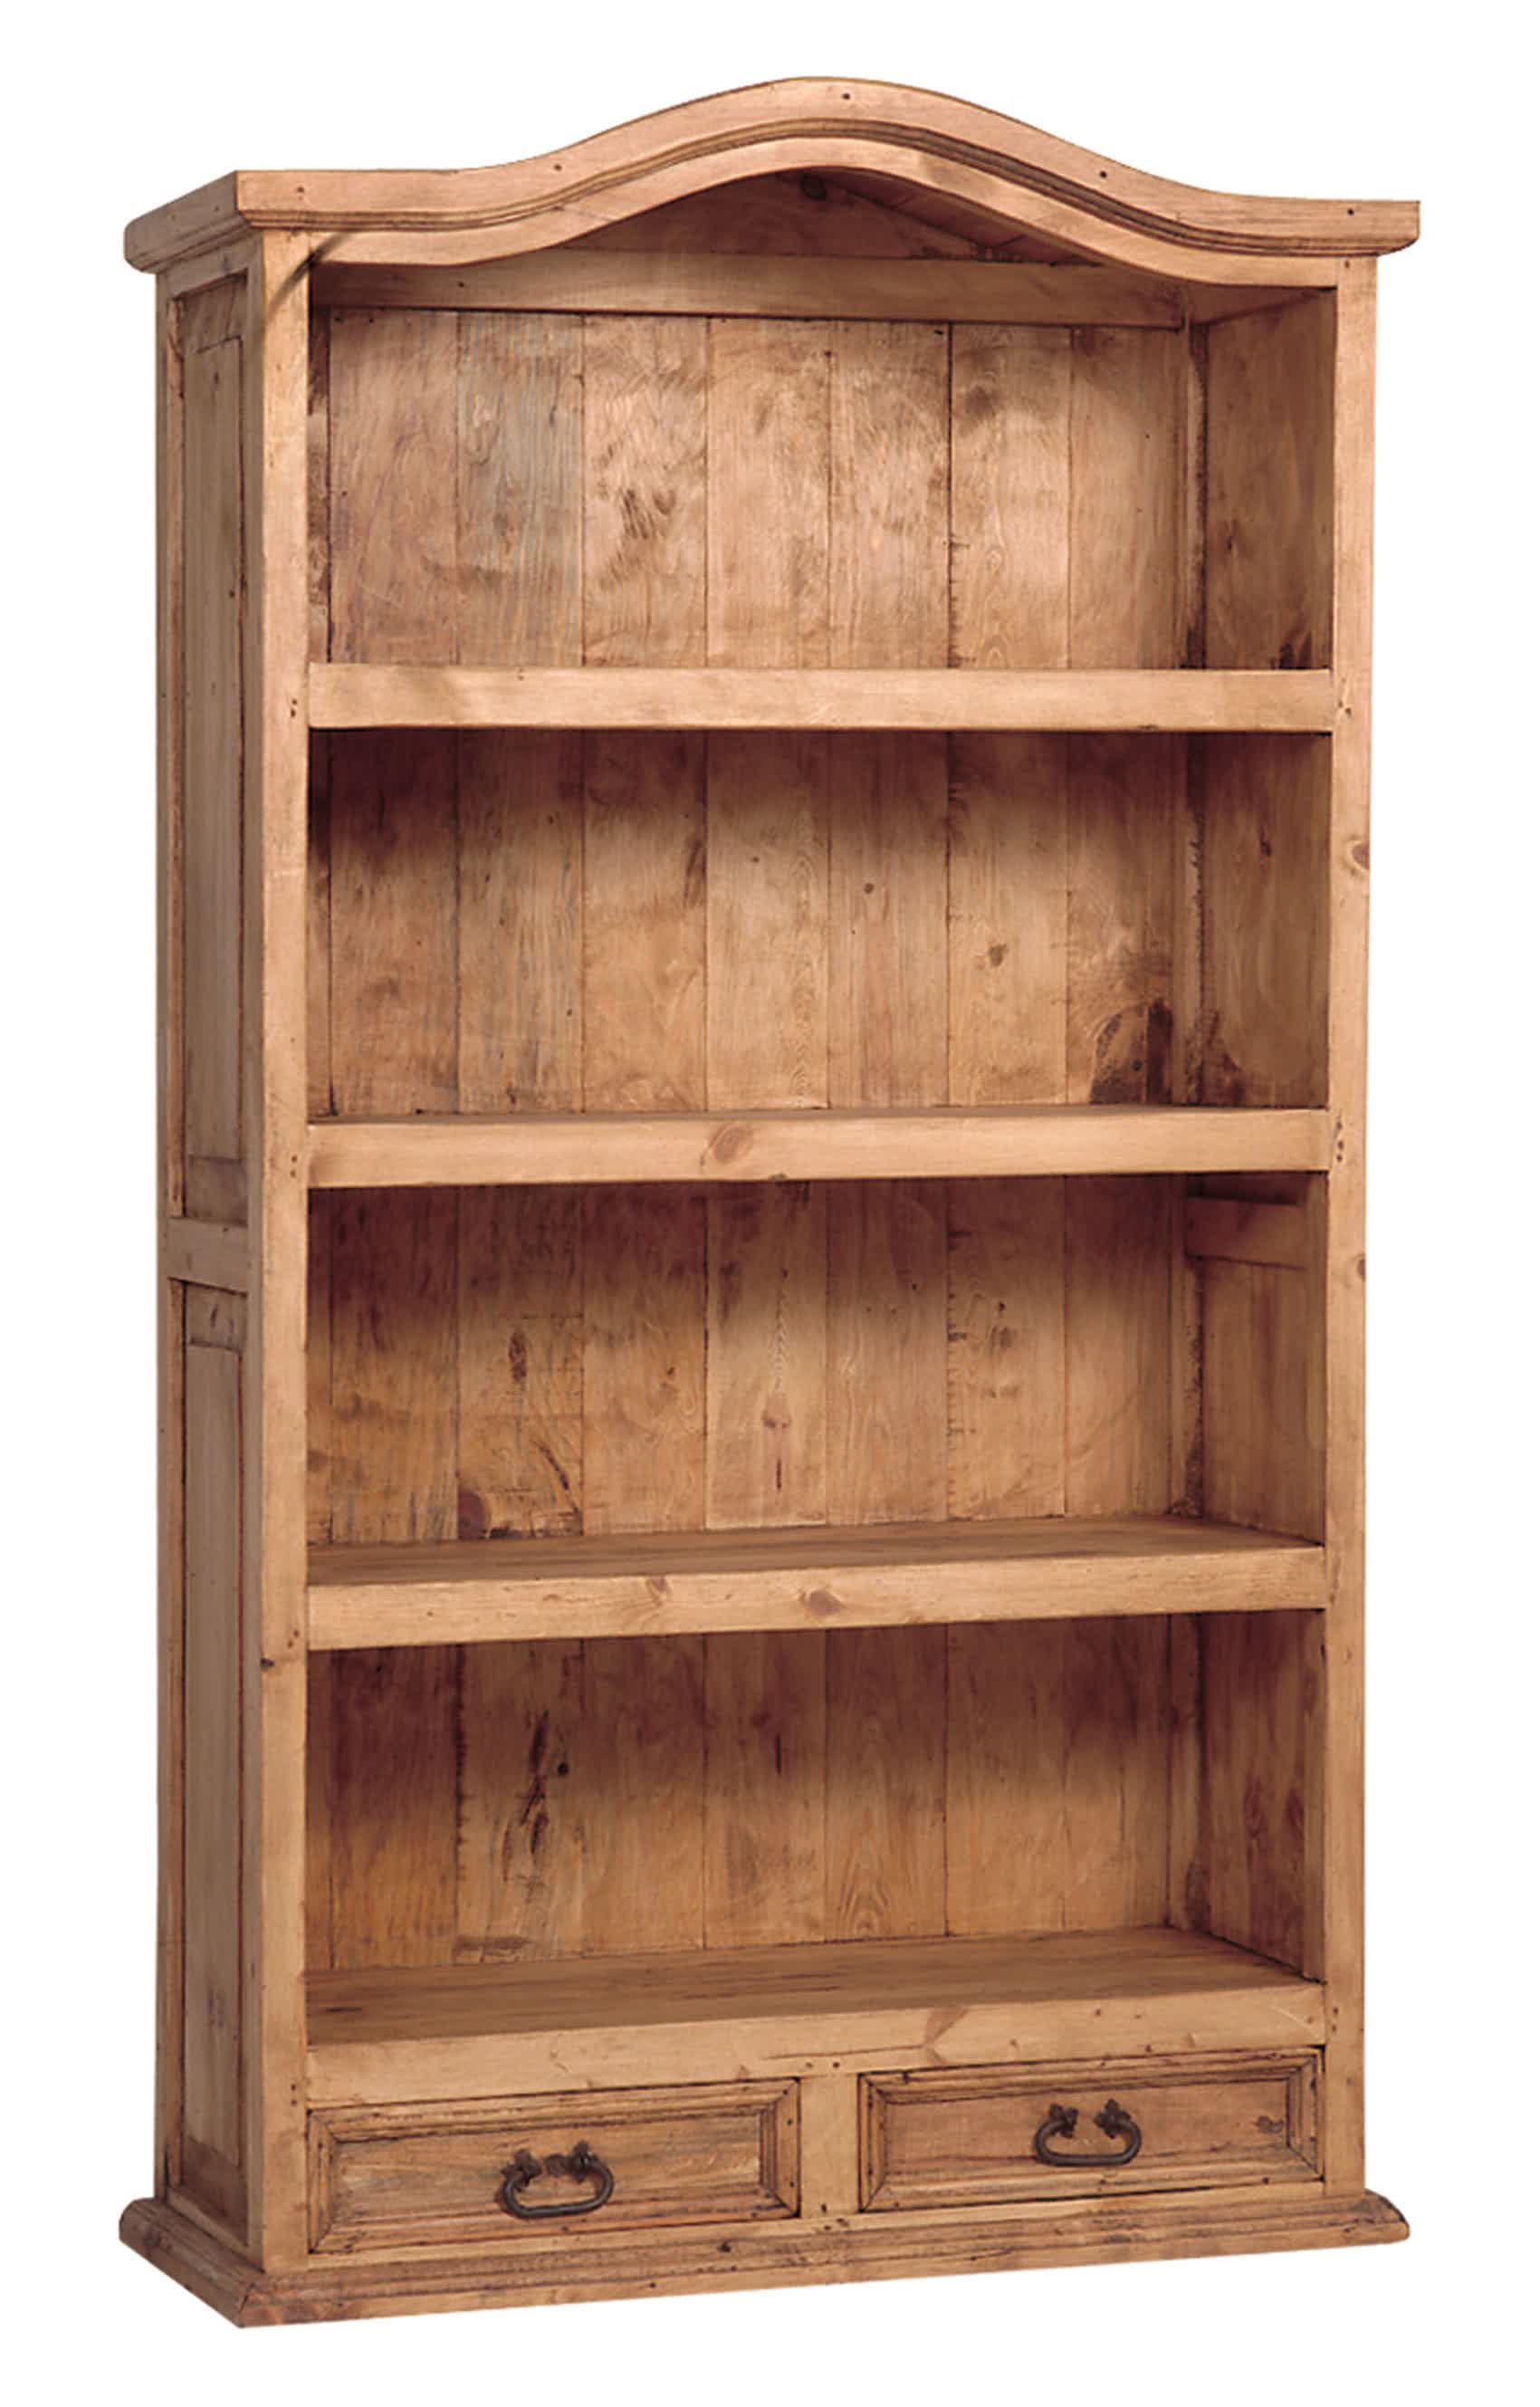 Image of: Solid Wood Bookcase Image